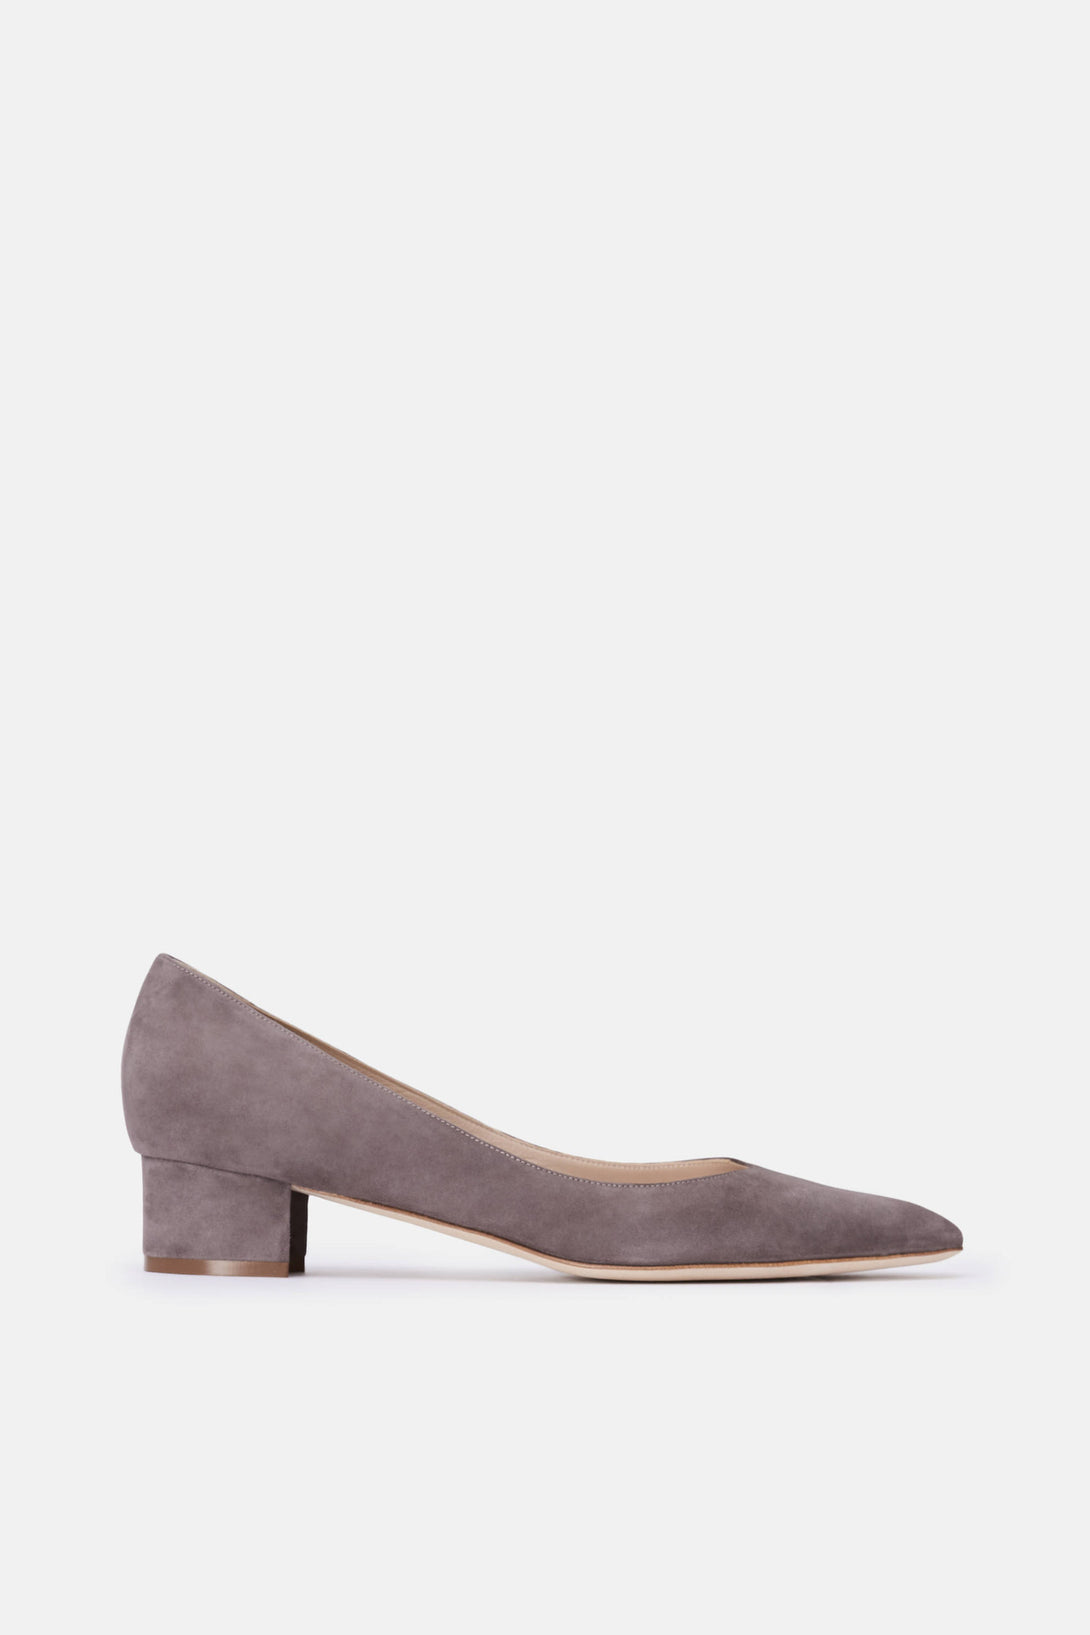 Listony Pump - Grey Suede